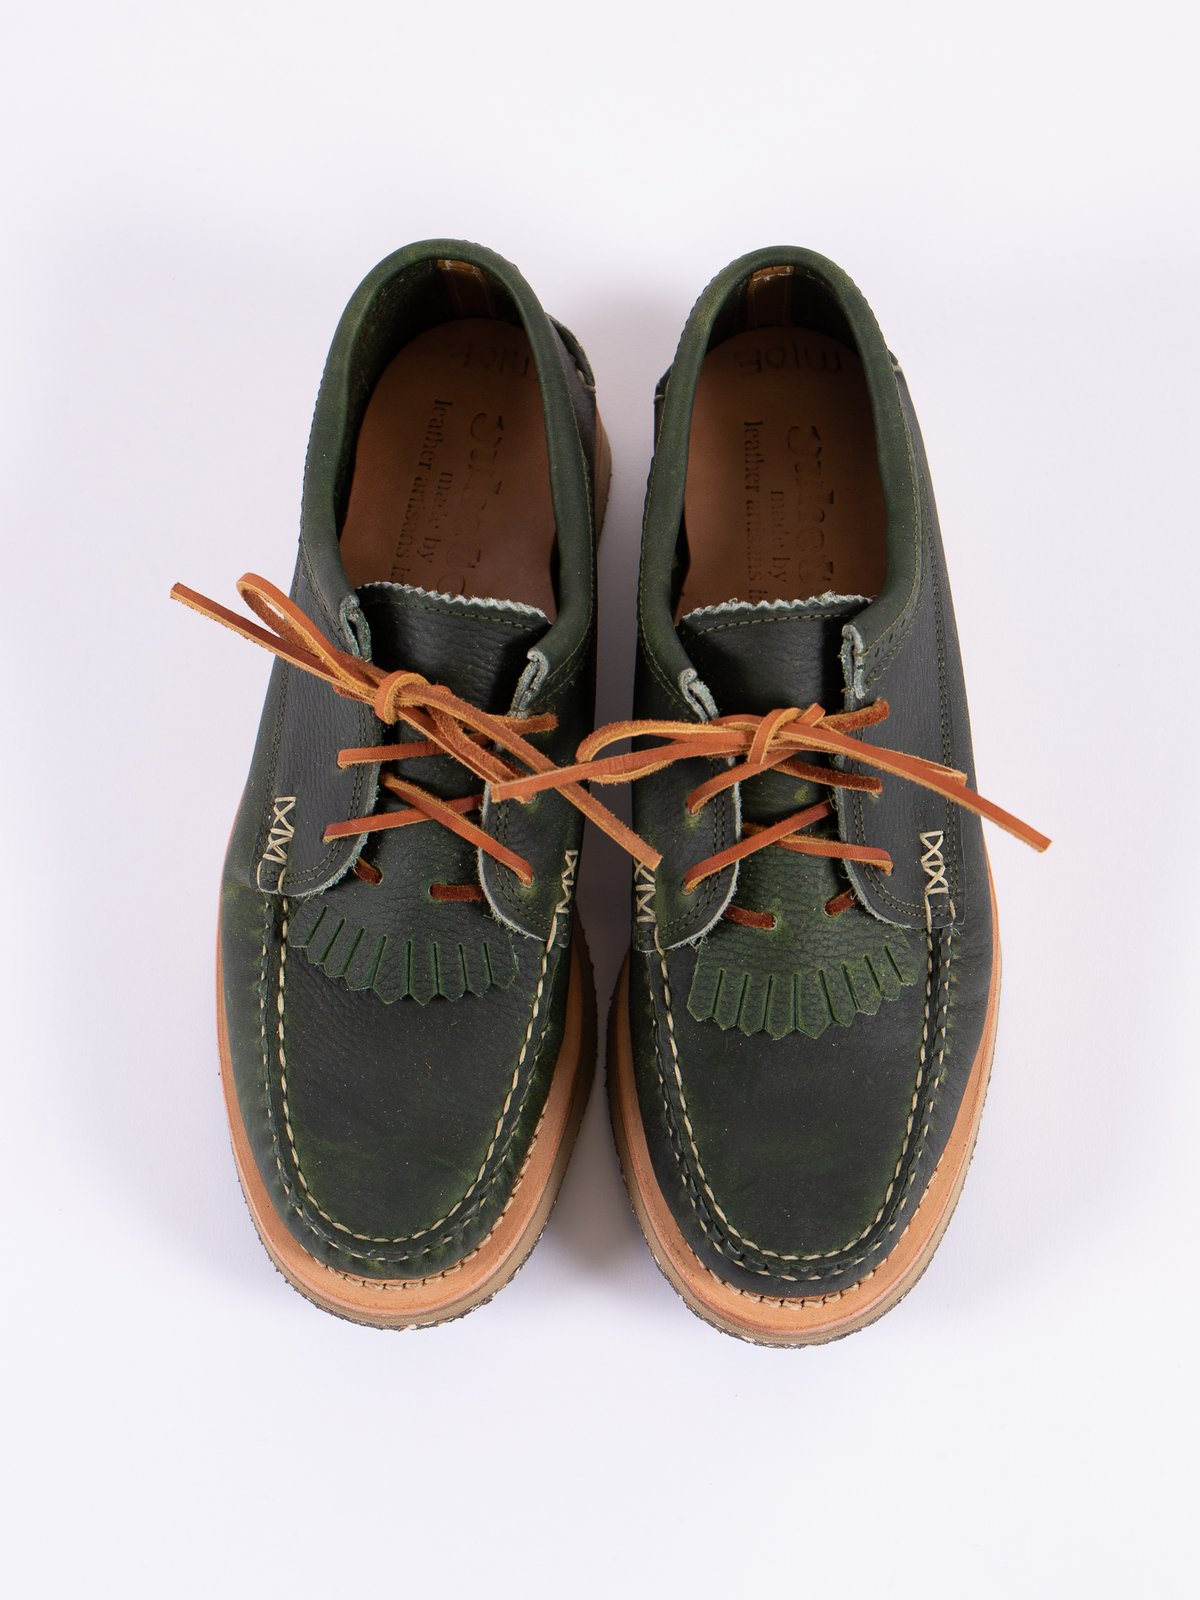 CP Persely Blucher Kiltie Rocker Exclusive - Image 6